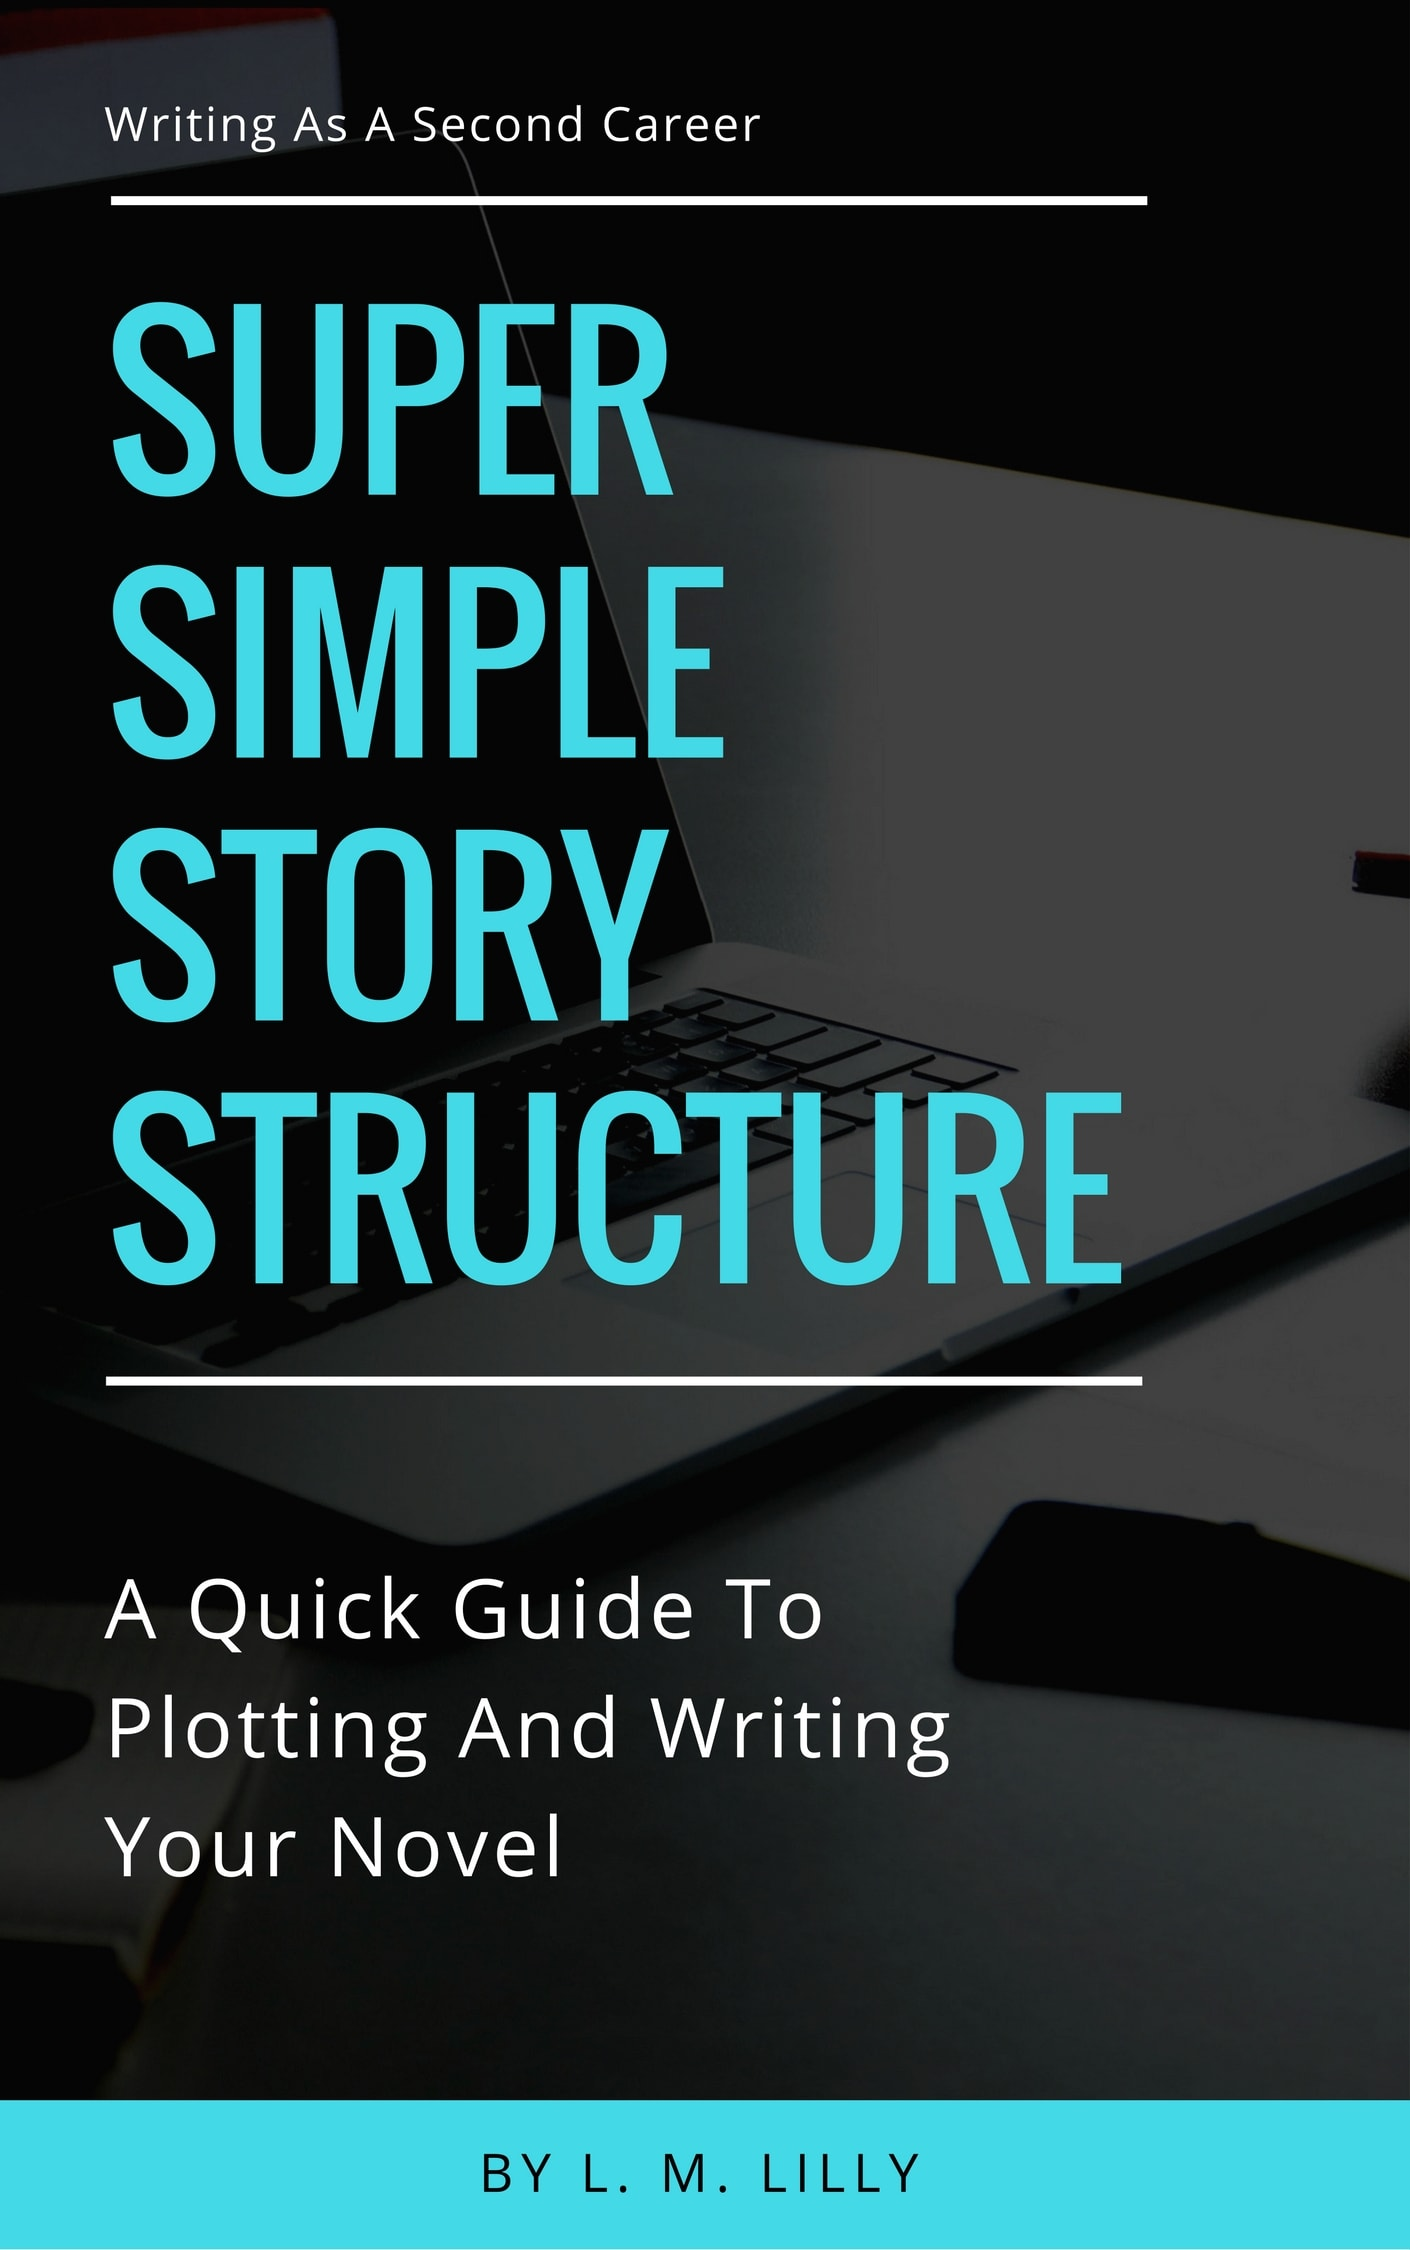 Super Simple Story Structure - Lisa Lilly